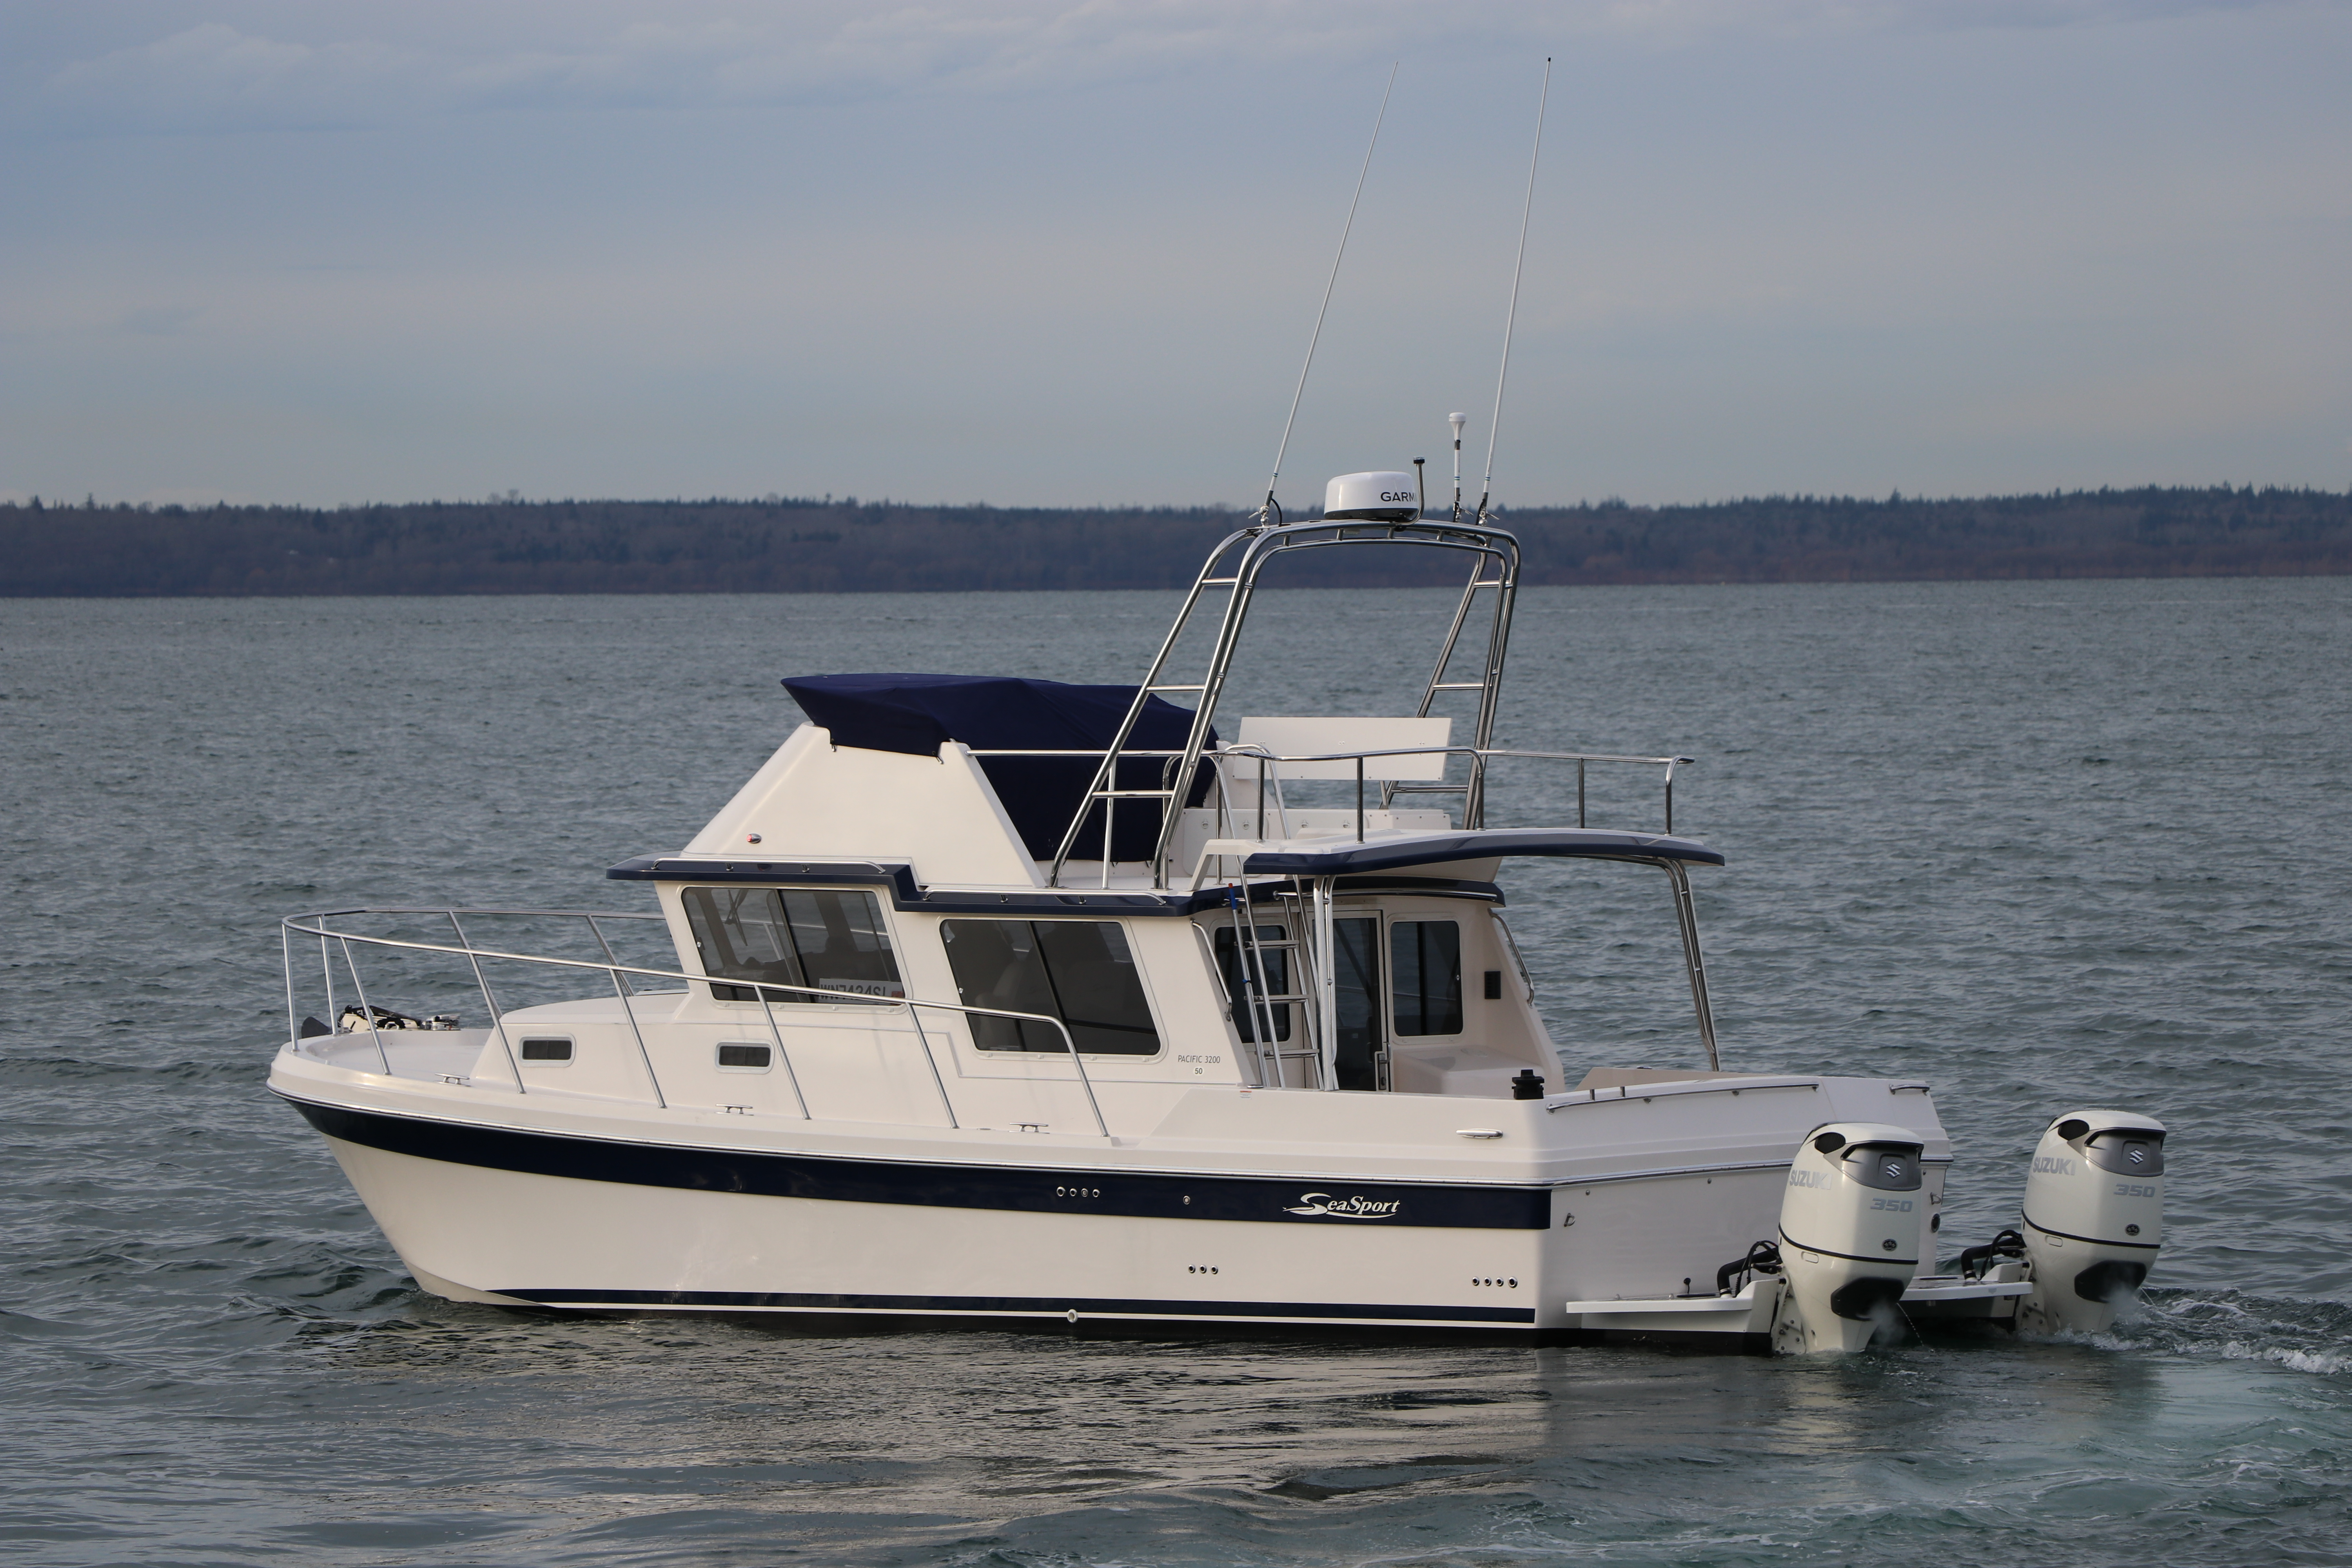 Pacific 3200